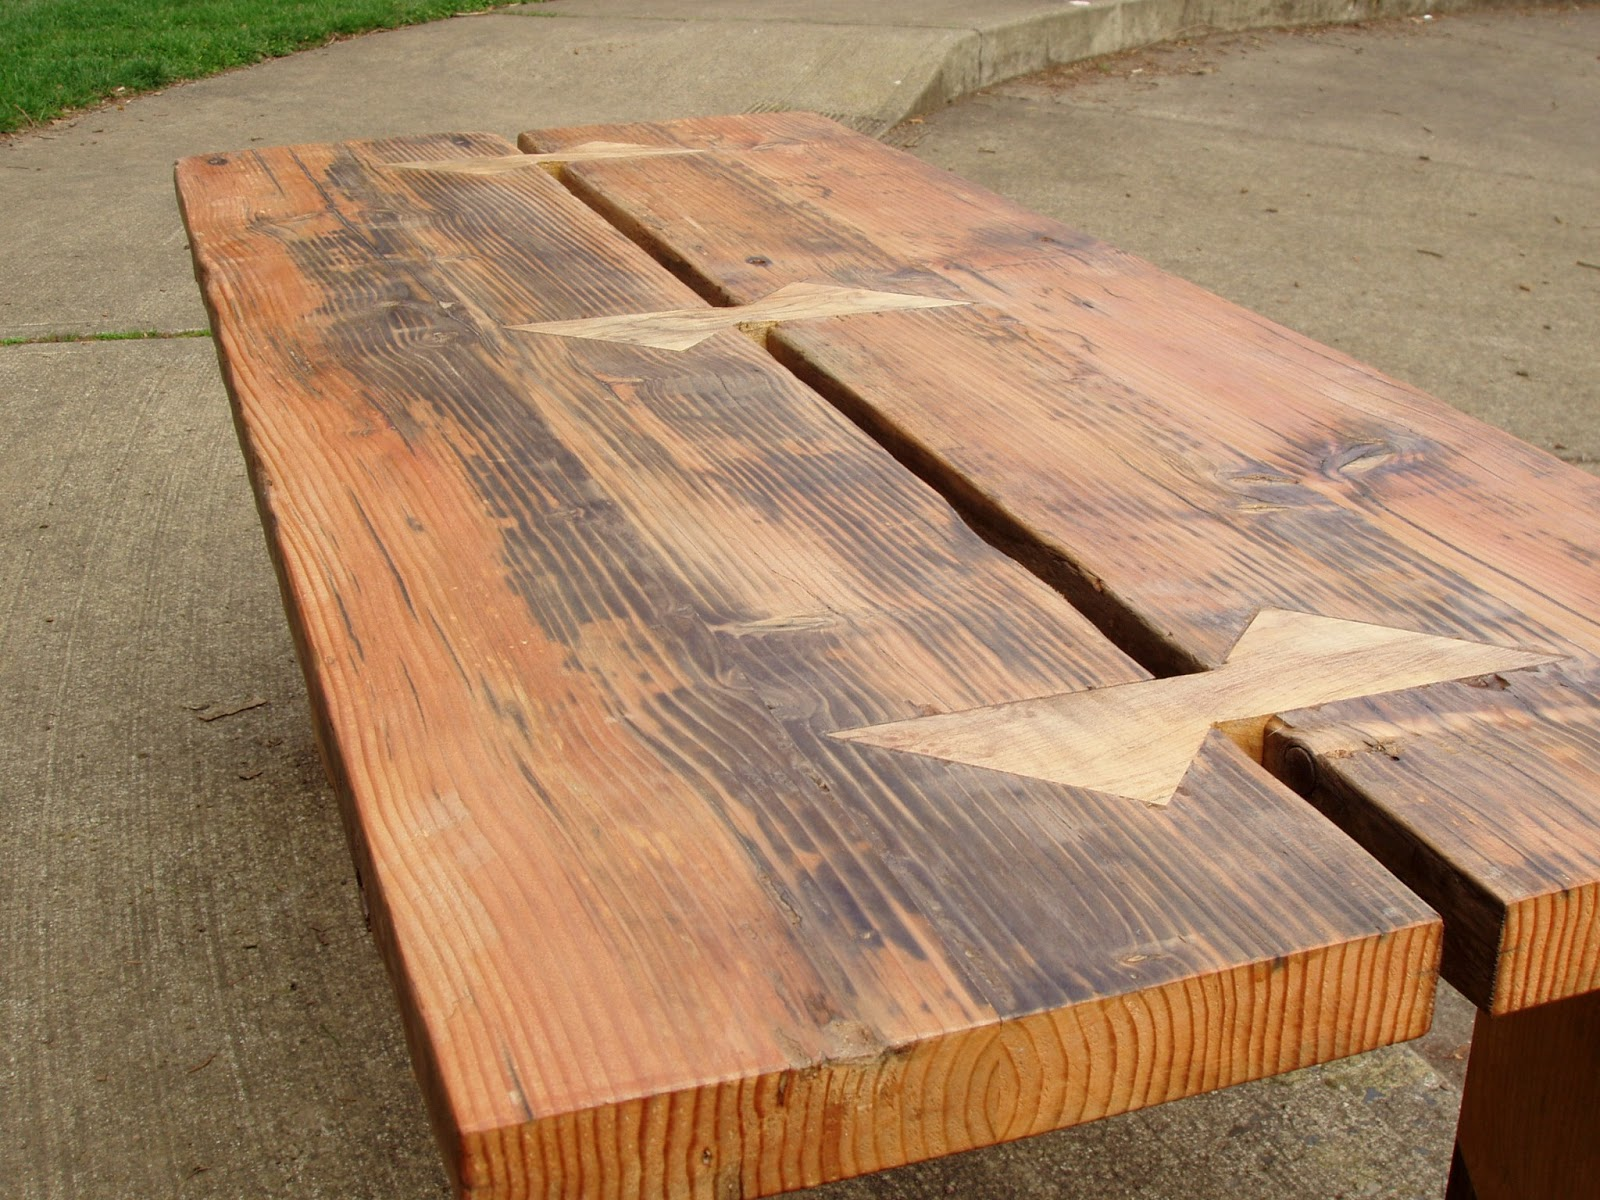 driftedge woodworking: Reclaimed Wood Furniture.